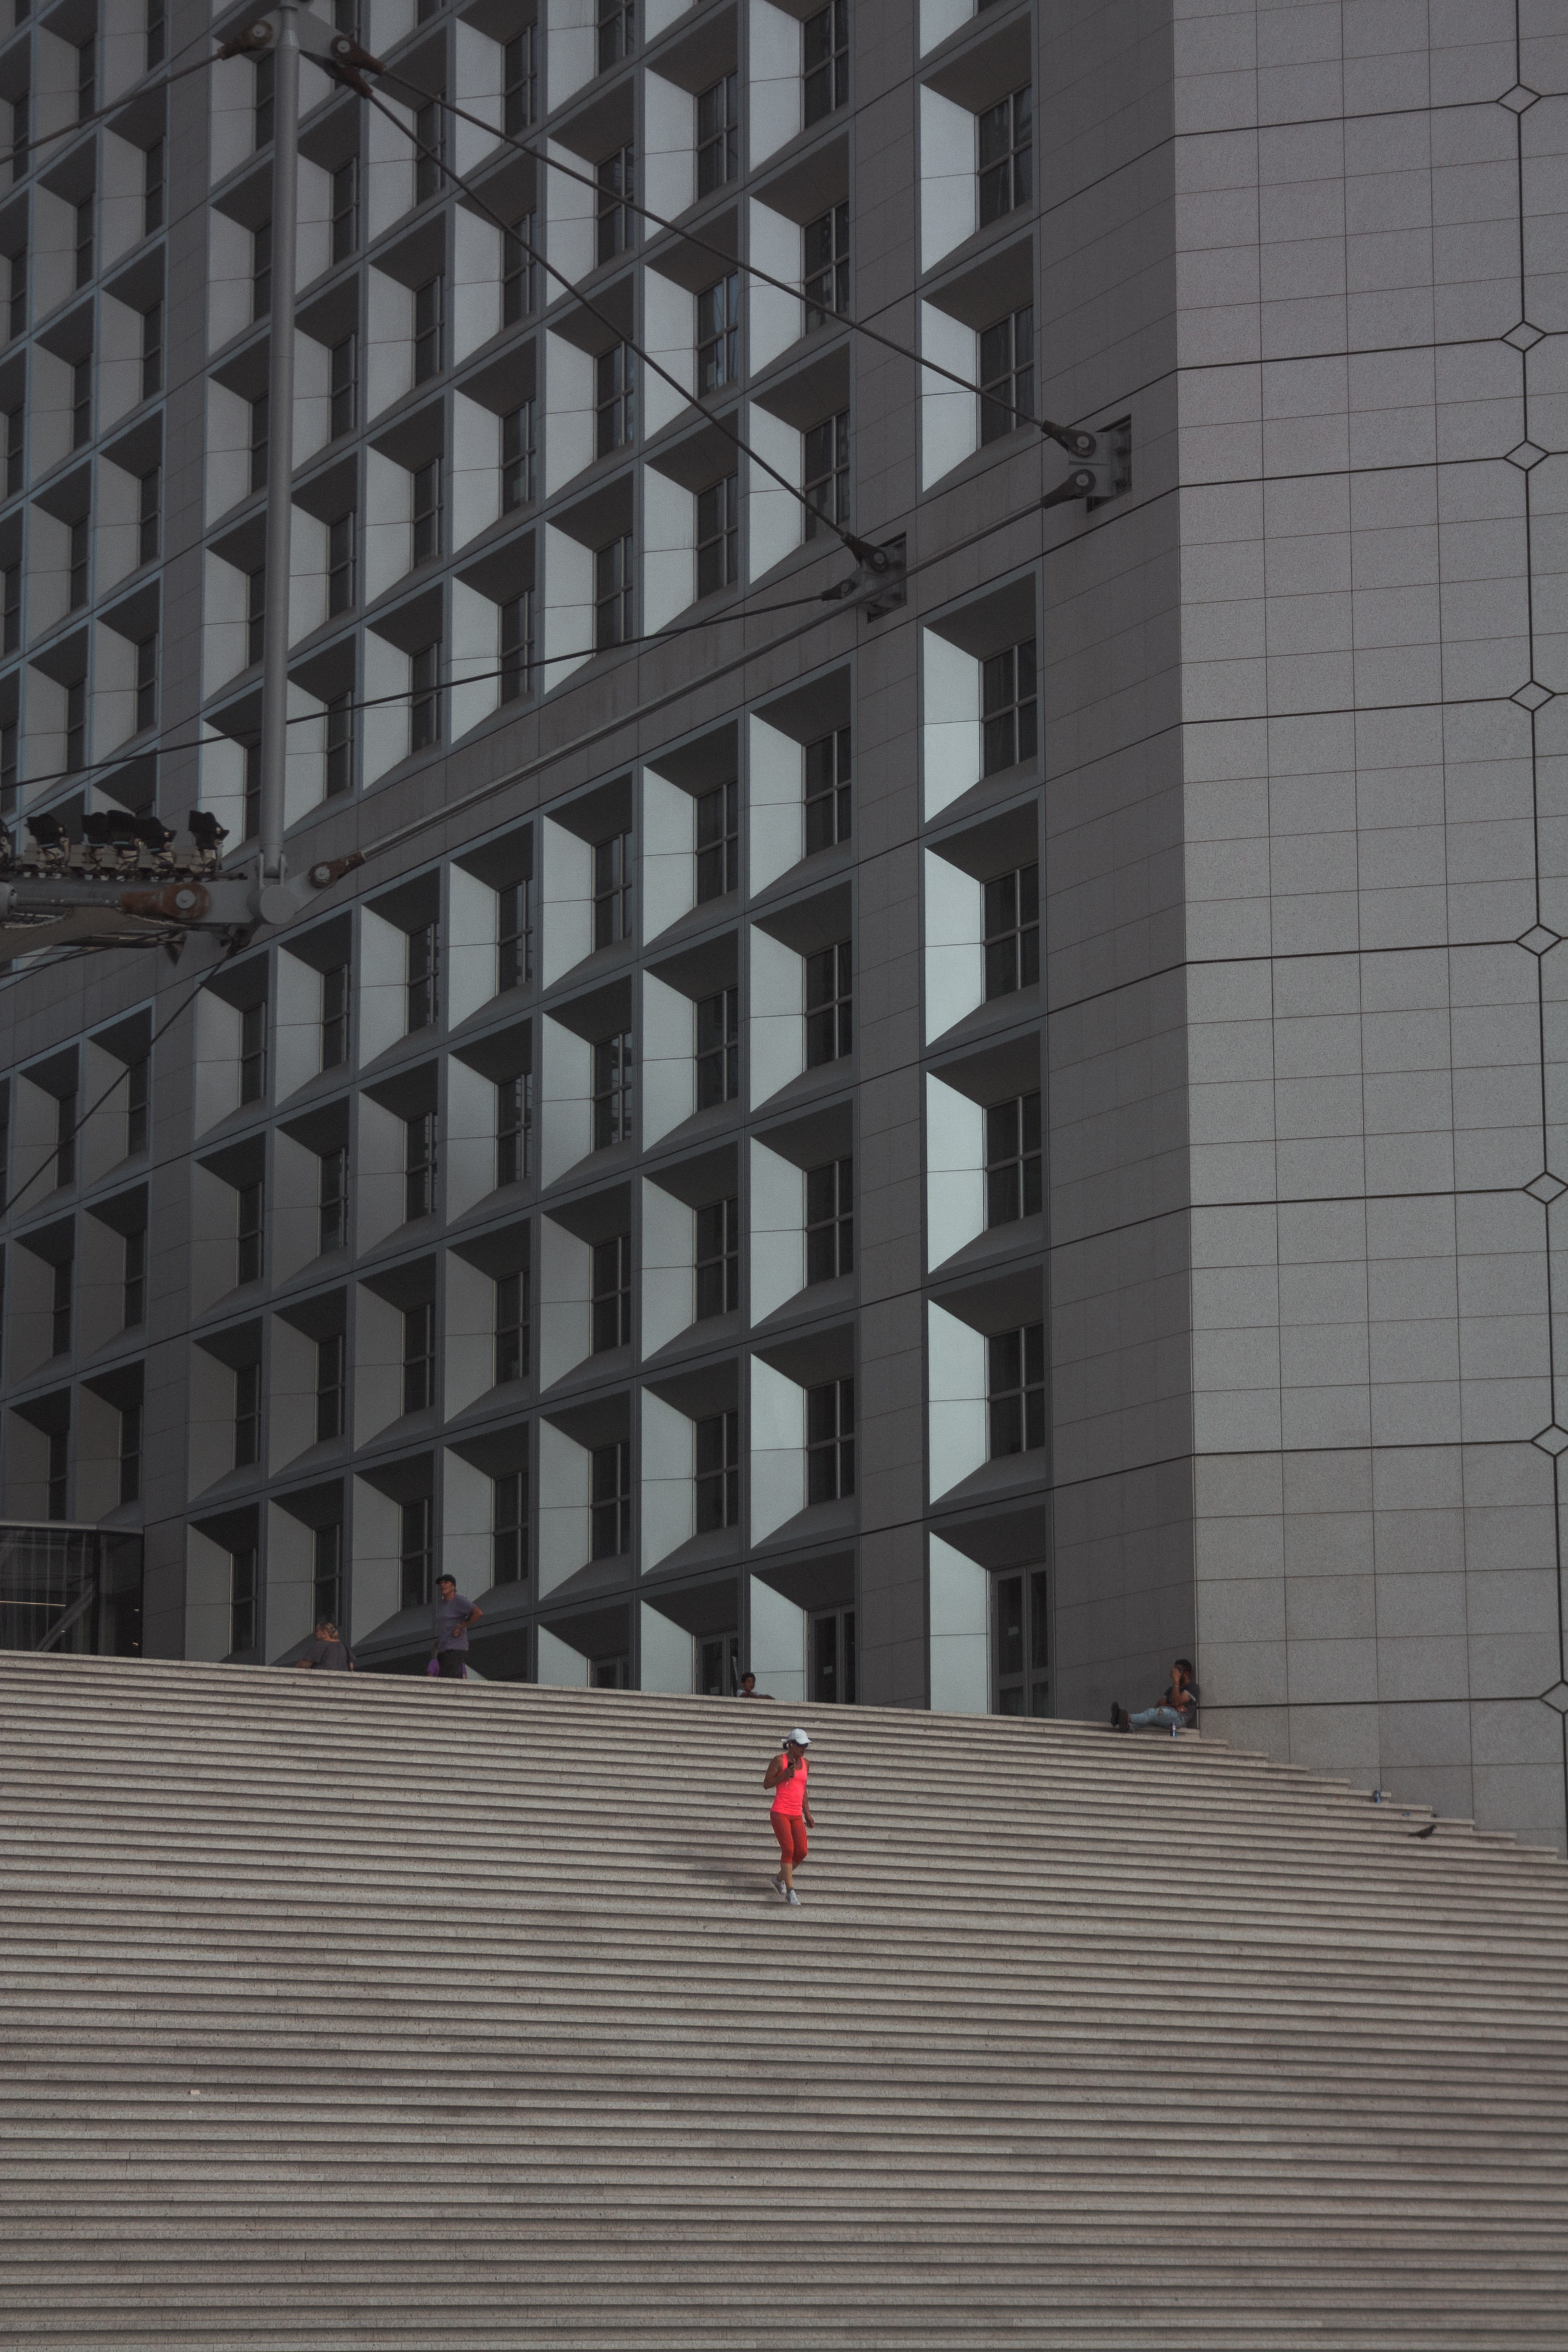 person walking downstairs near concrete building